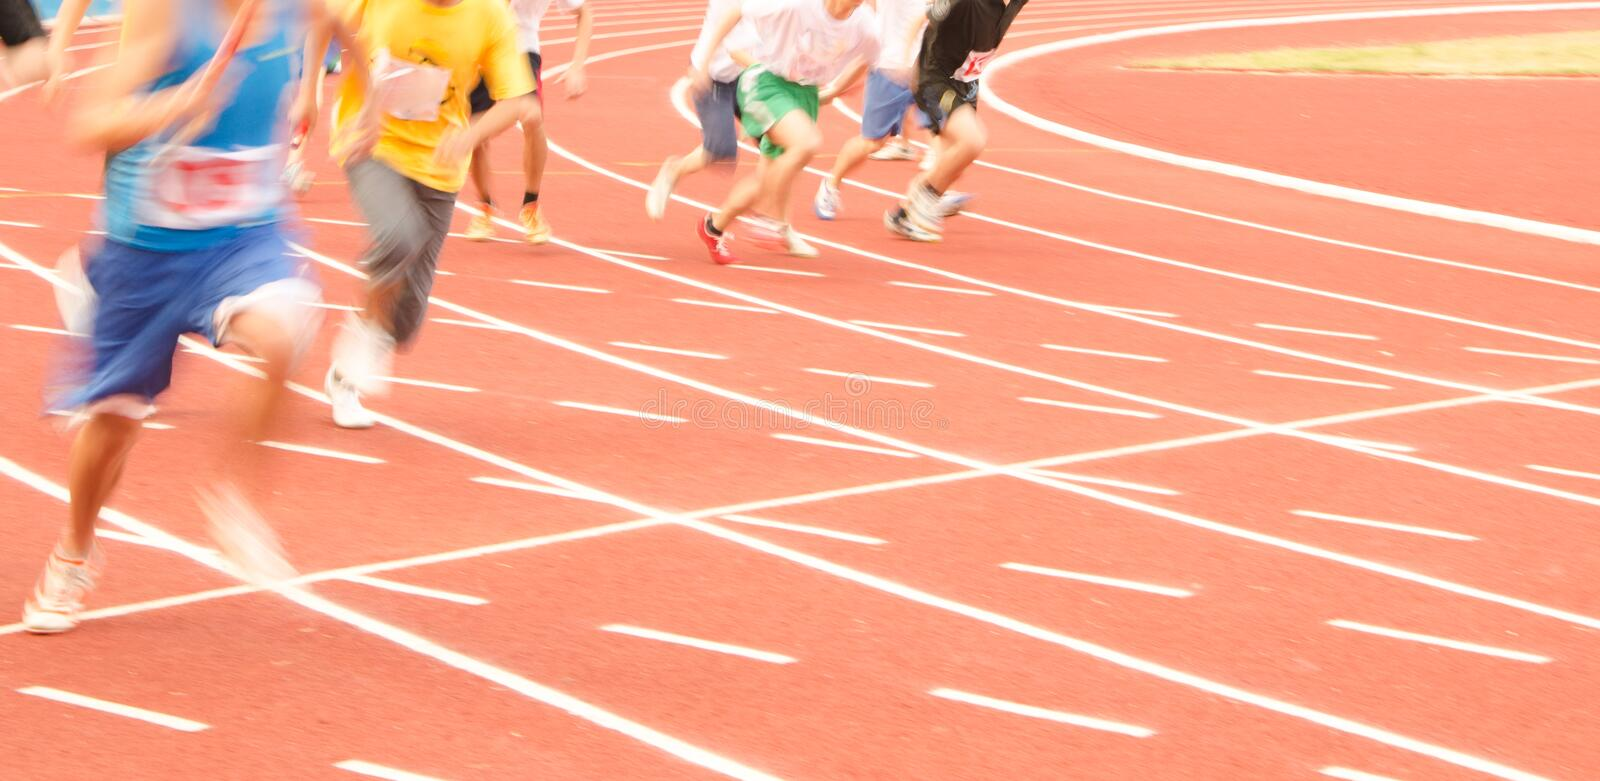 A group of male athletes running on the track, the fuzzy movement royalty free stock photography